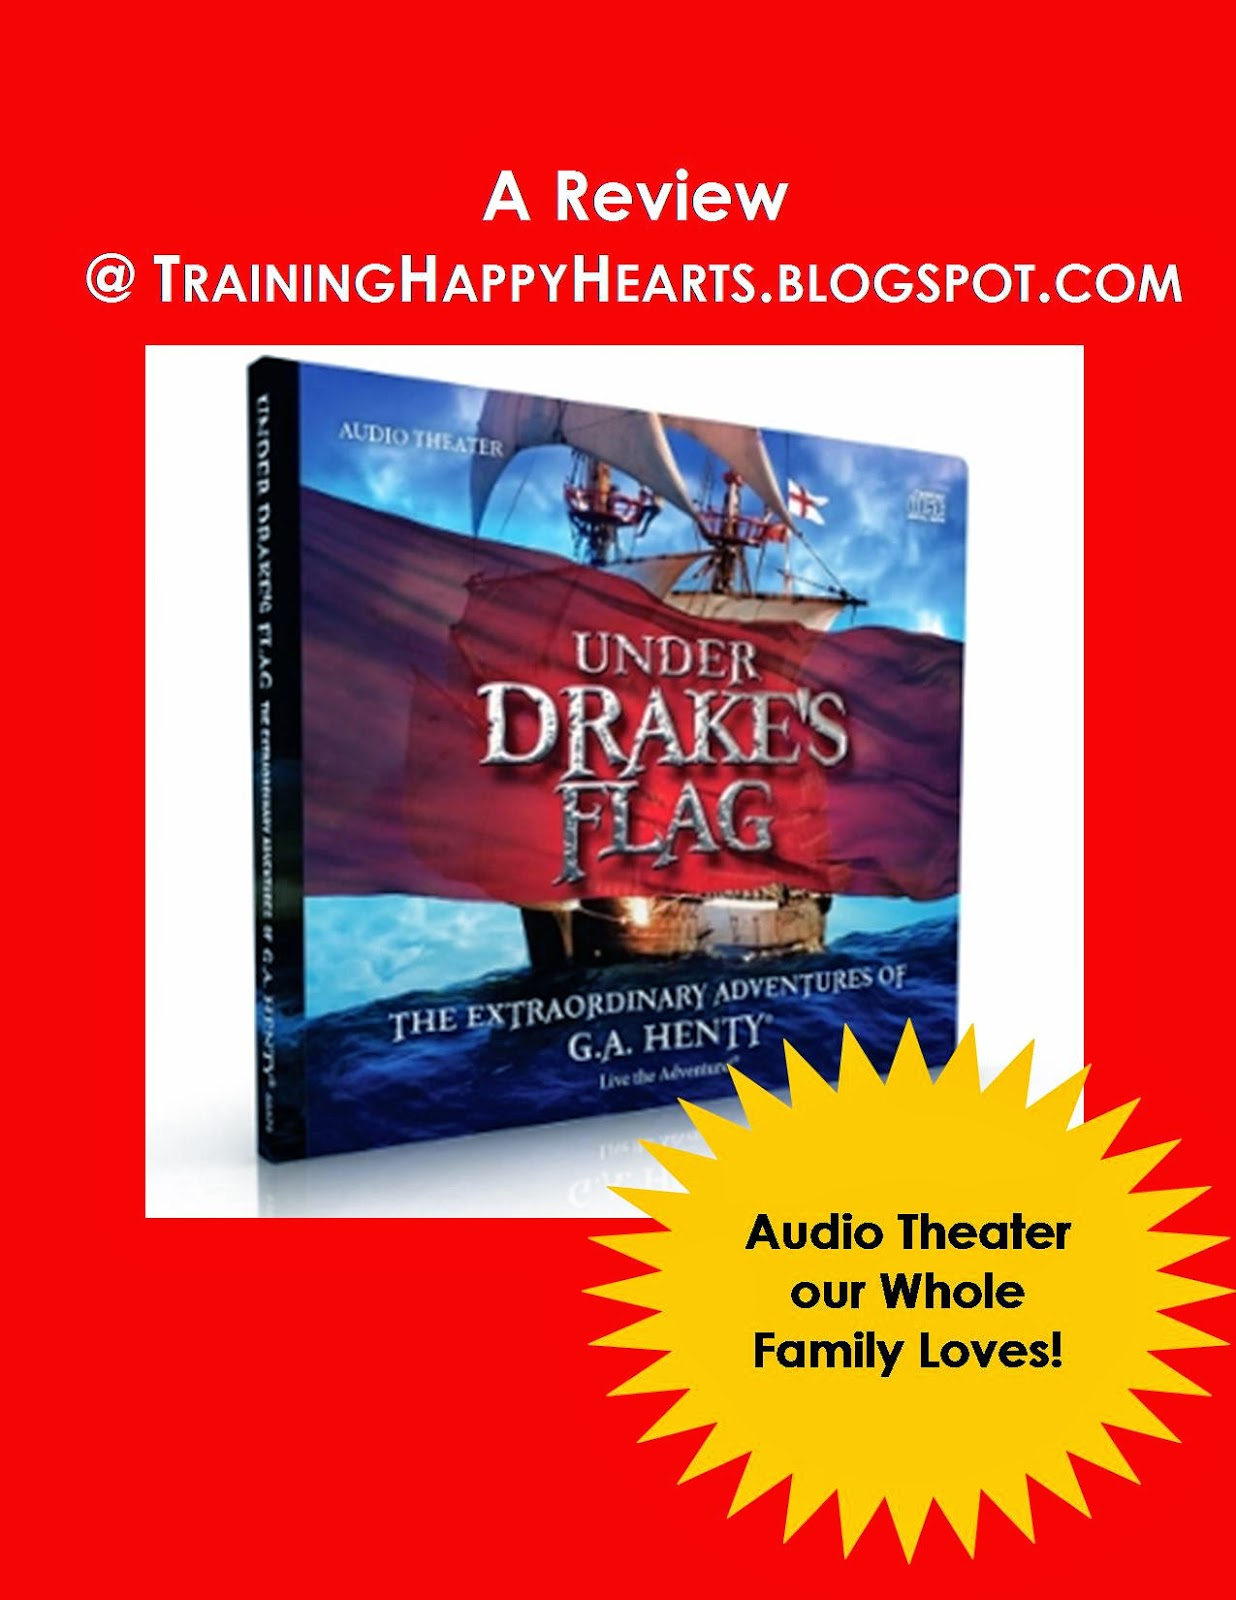 http://traininghappyhearts.blogspot.com/2014/09/the-audiobook-my-kids-cannot-get-enough.html